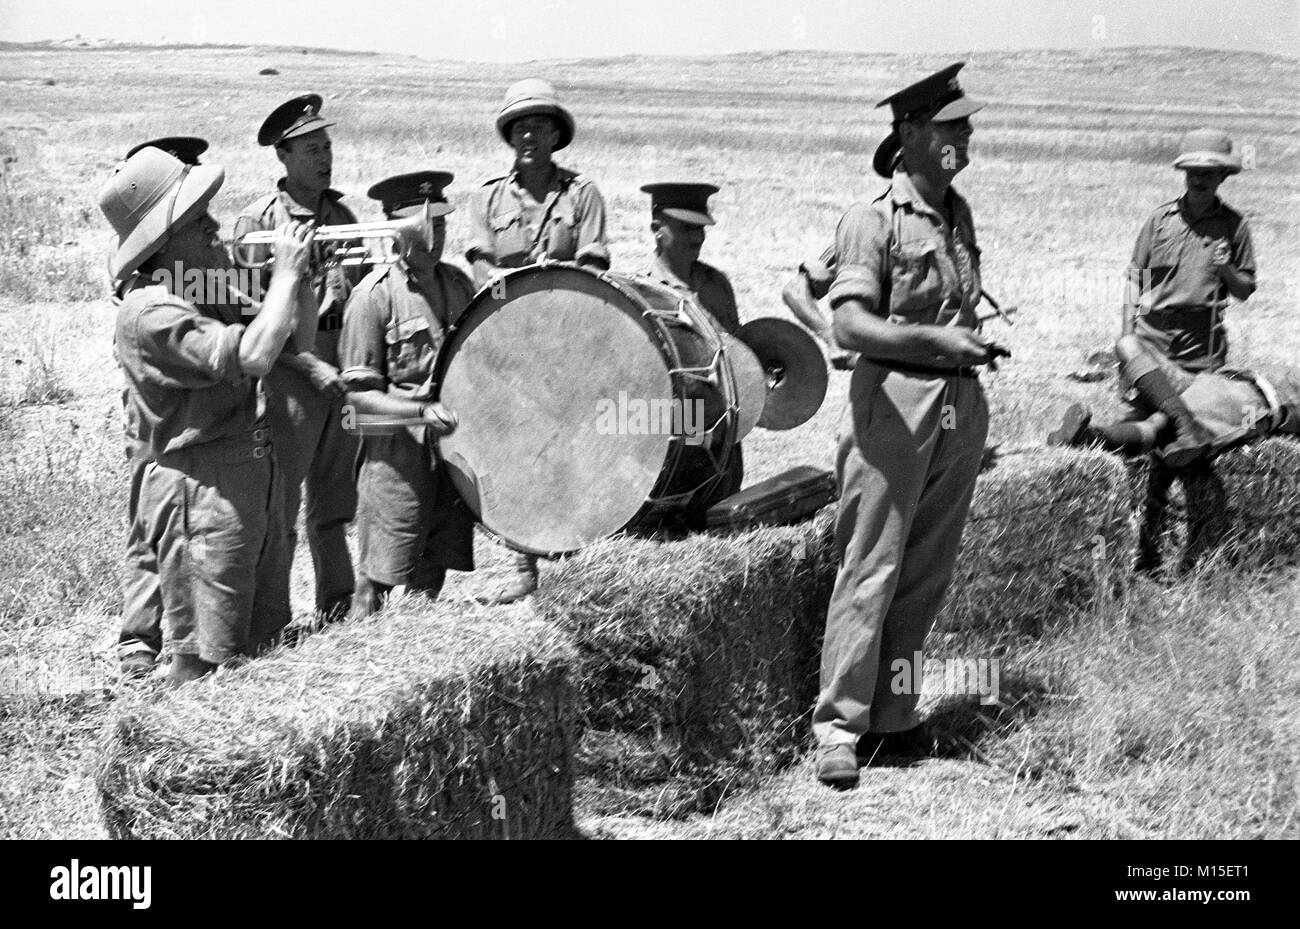 British army soldiers and miltary band having fun and entertainment in Palestine 1940 - Stock Image